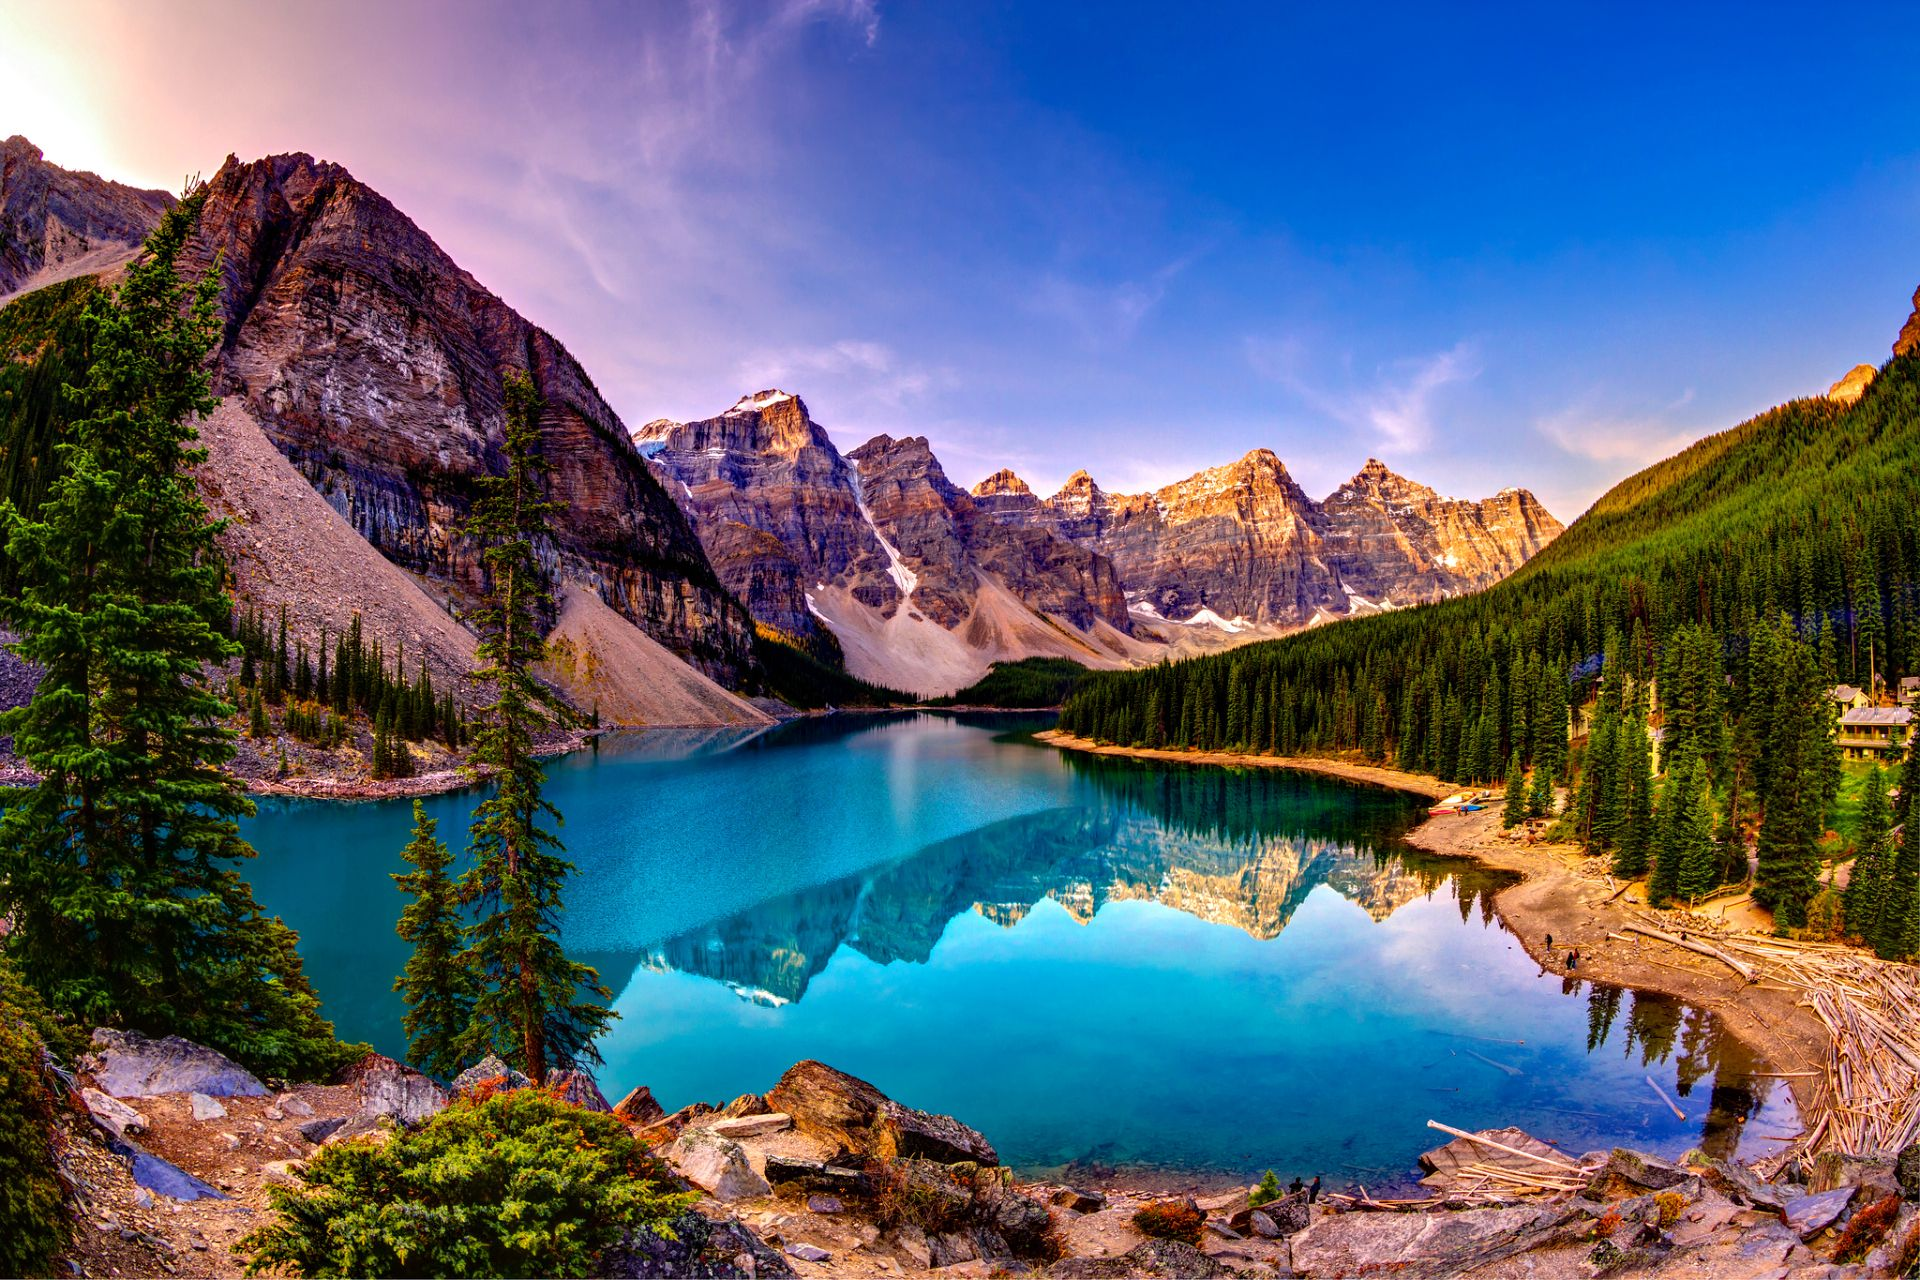 Moraine Lake Wallpaper Moraine Lake Wallpaper Download Free Moraine Lake Wallpaper And